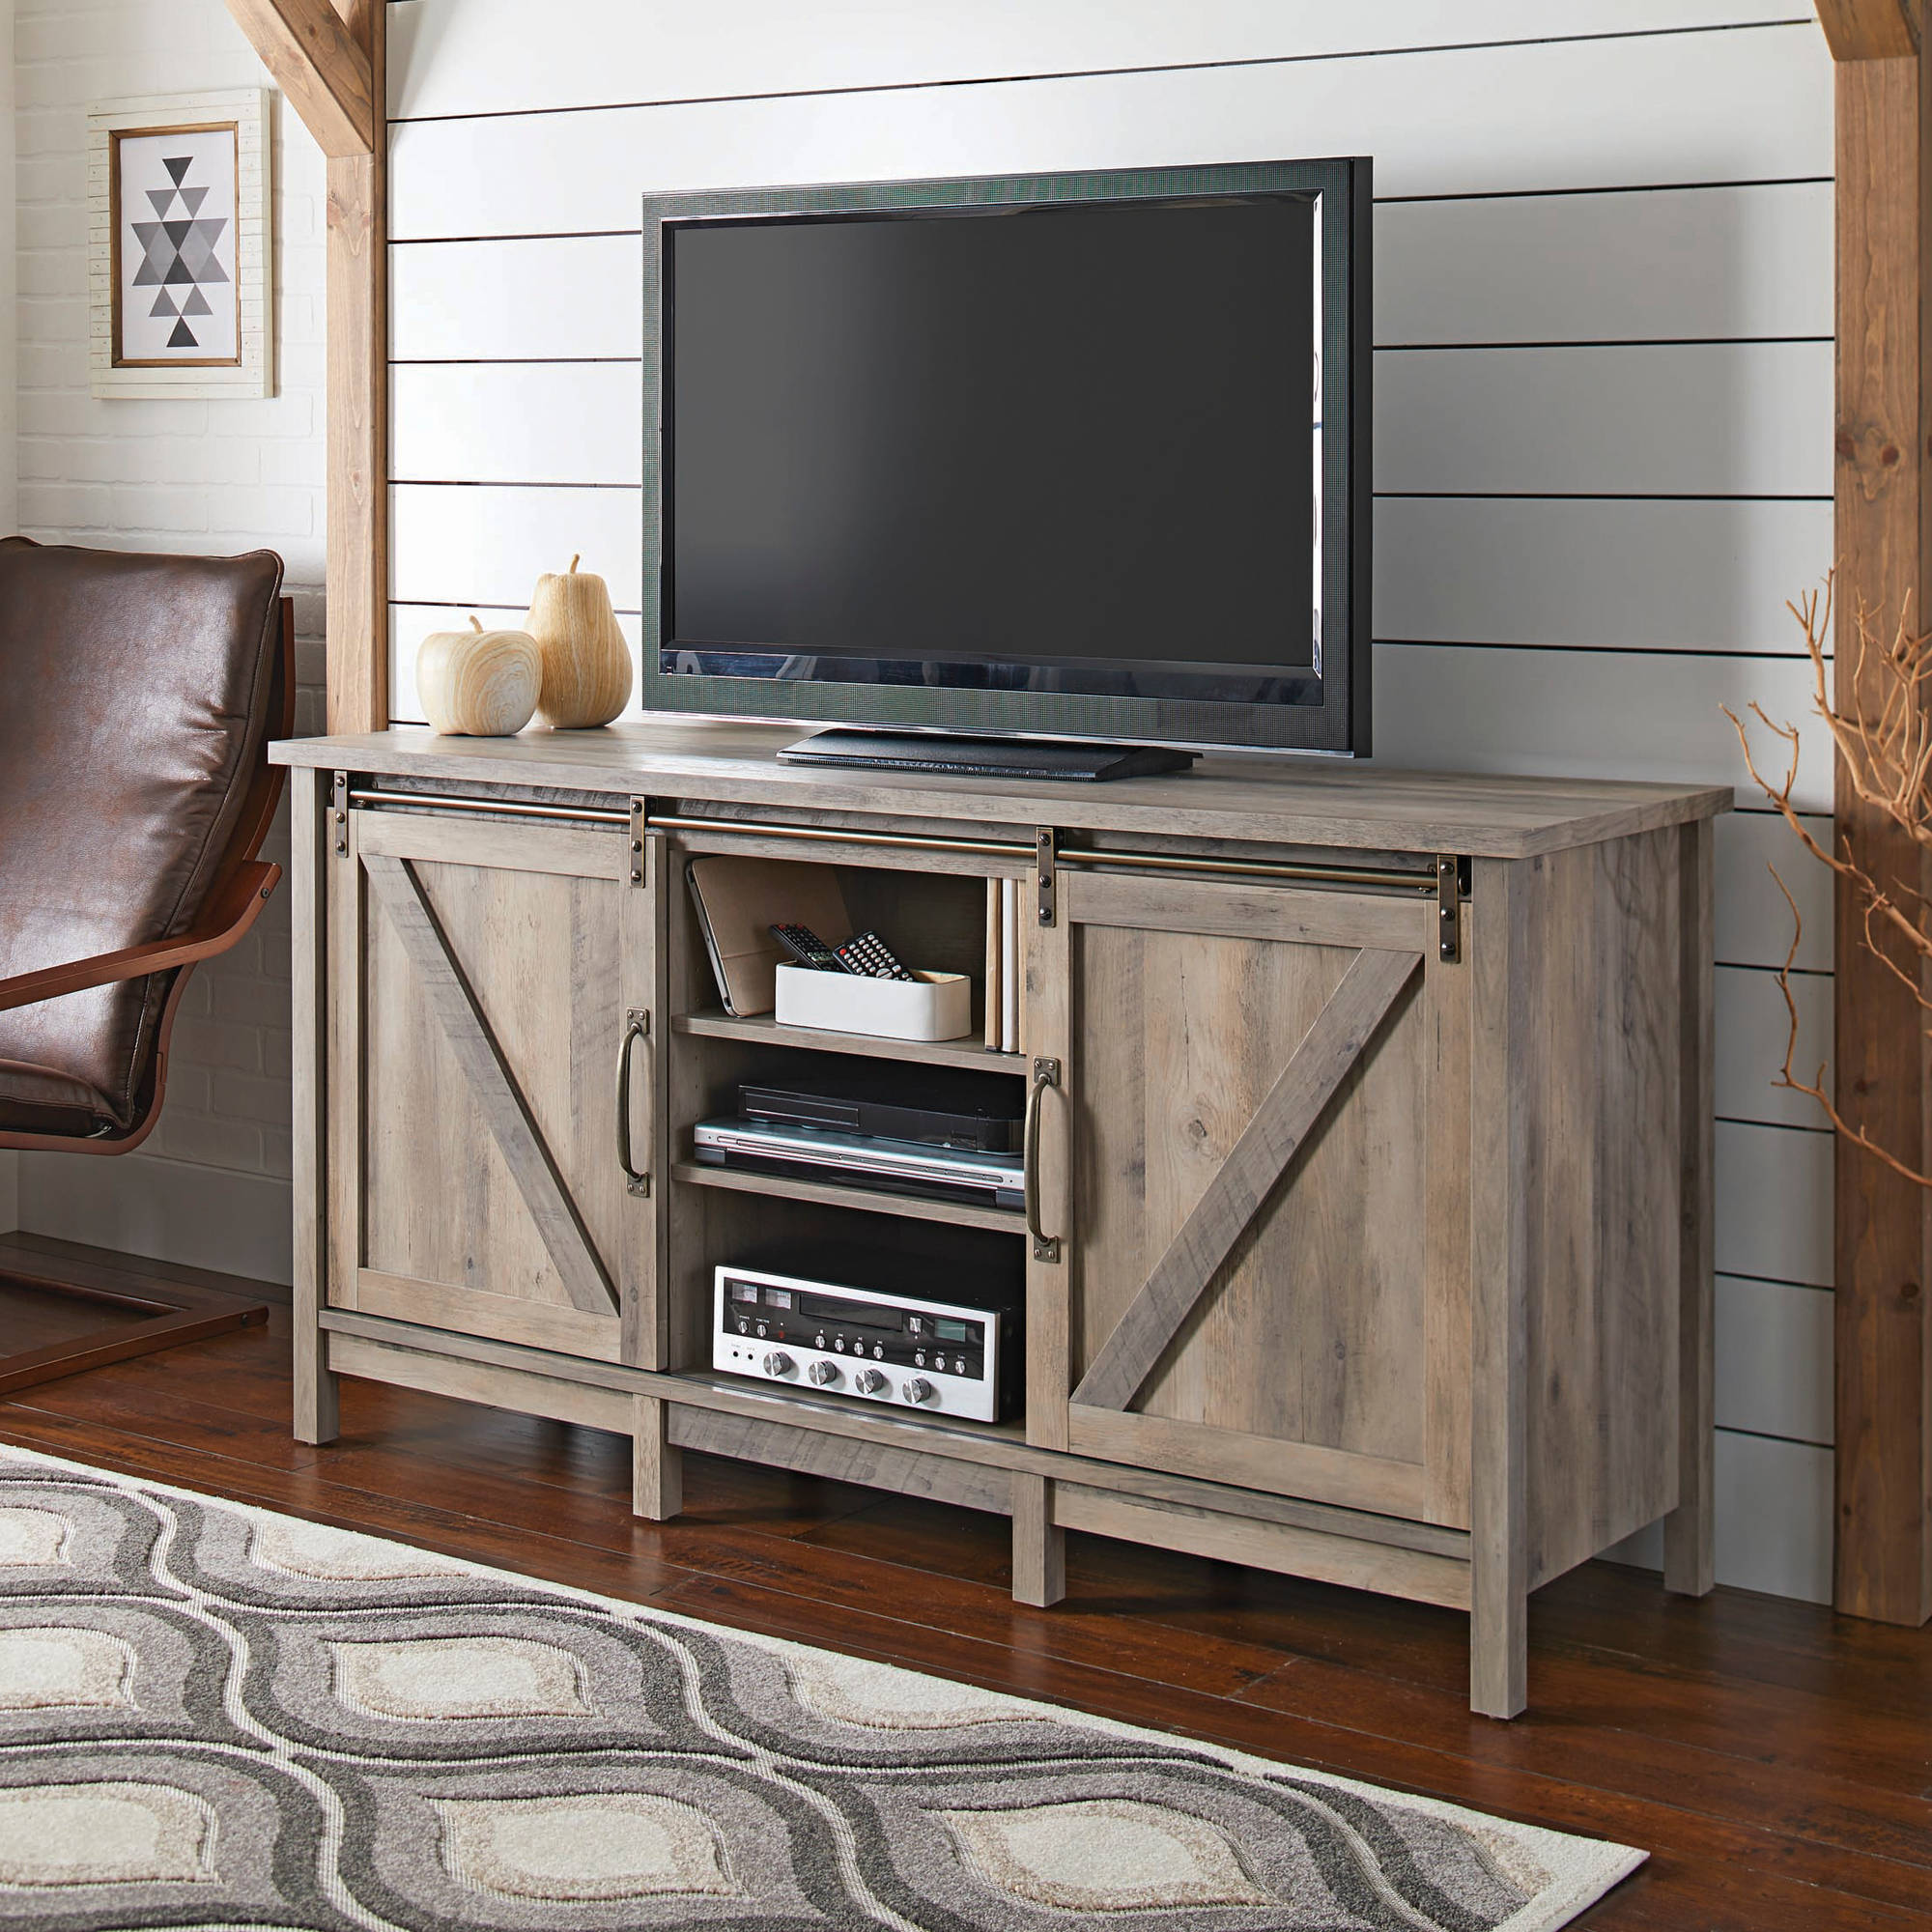 "Better Homes and Gardens Modern Farmhouse TV Stand for TVs up to 60"", Rustic Gray Finish"